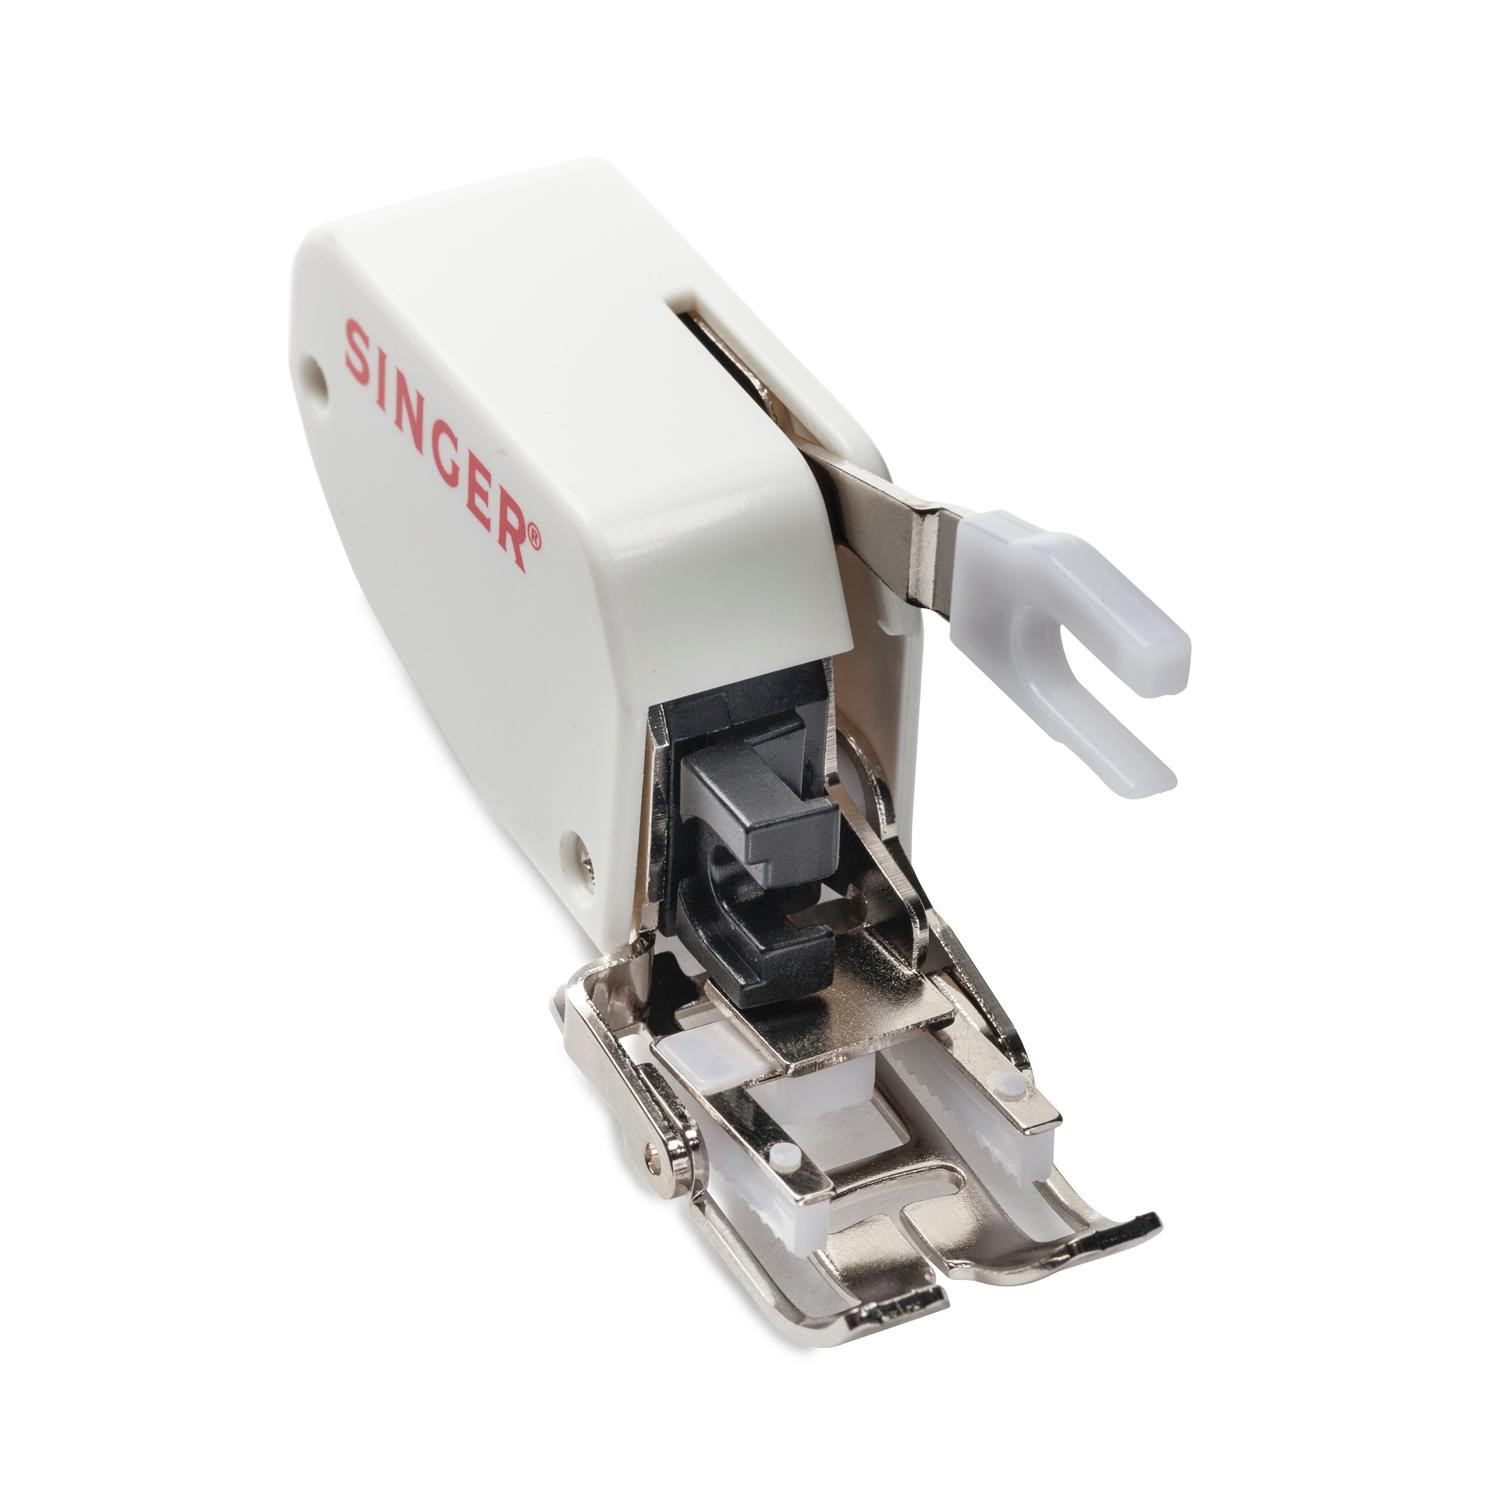 Luxury Singer even Feed Walking Foot for Quilting or Thick Fabric Sewing Machine Foot Of Unique 40 Ideas Sewing Machine Foot